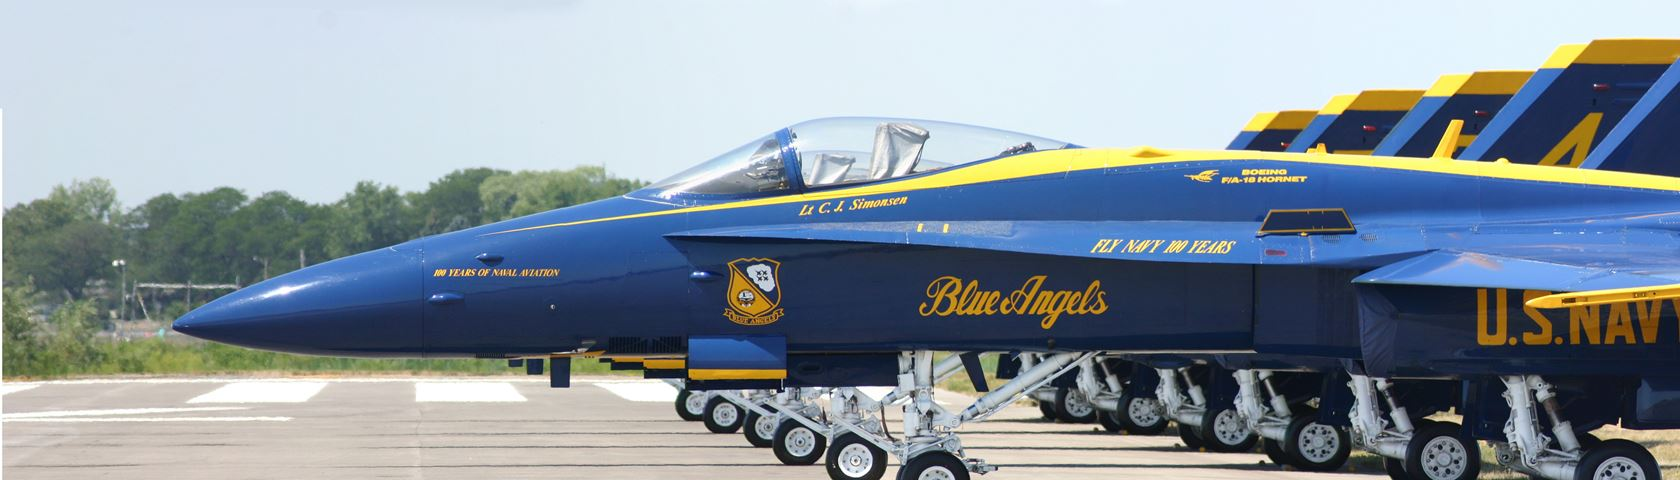 Blue Angles ROC Airshow